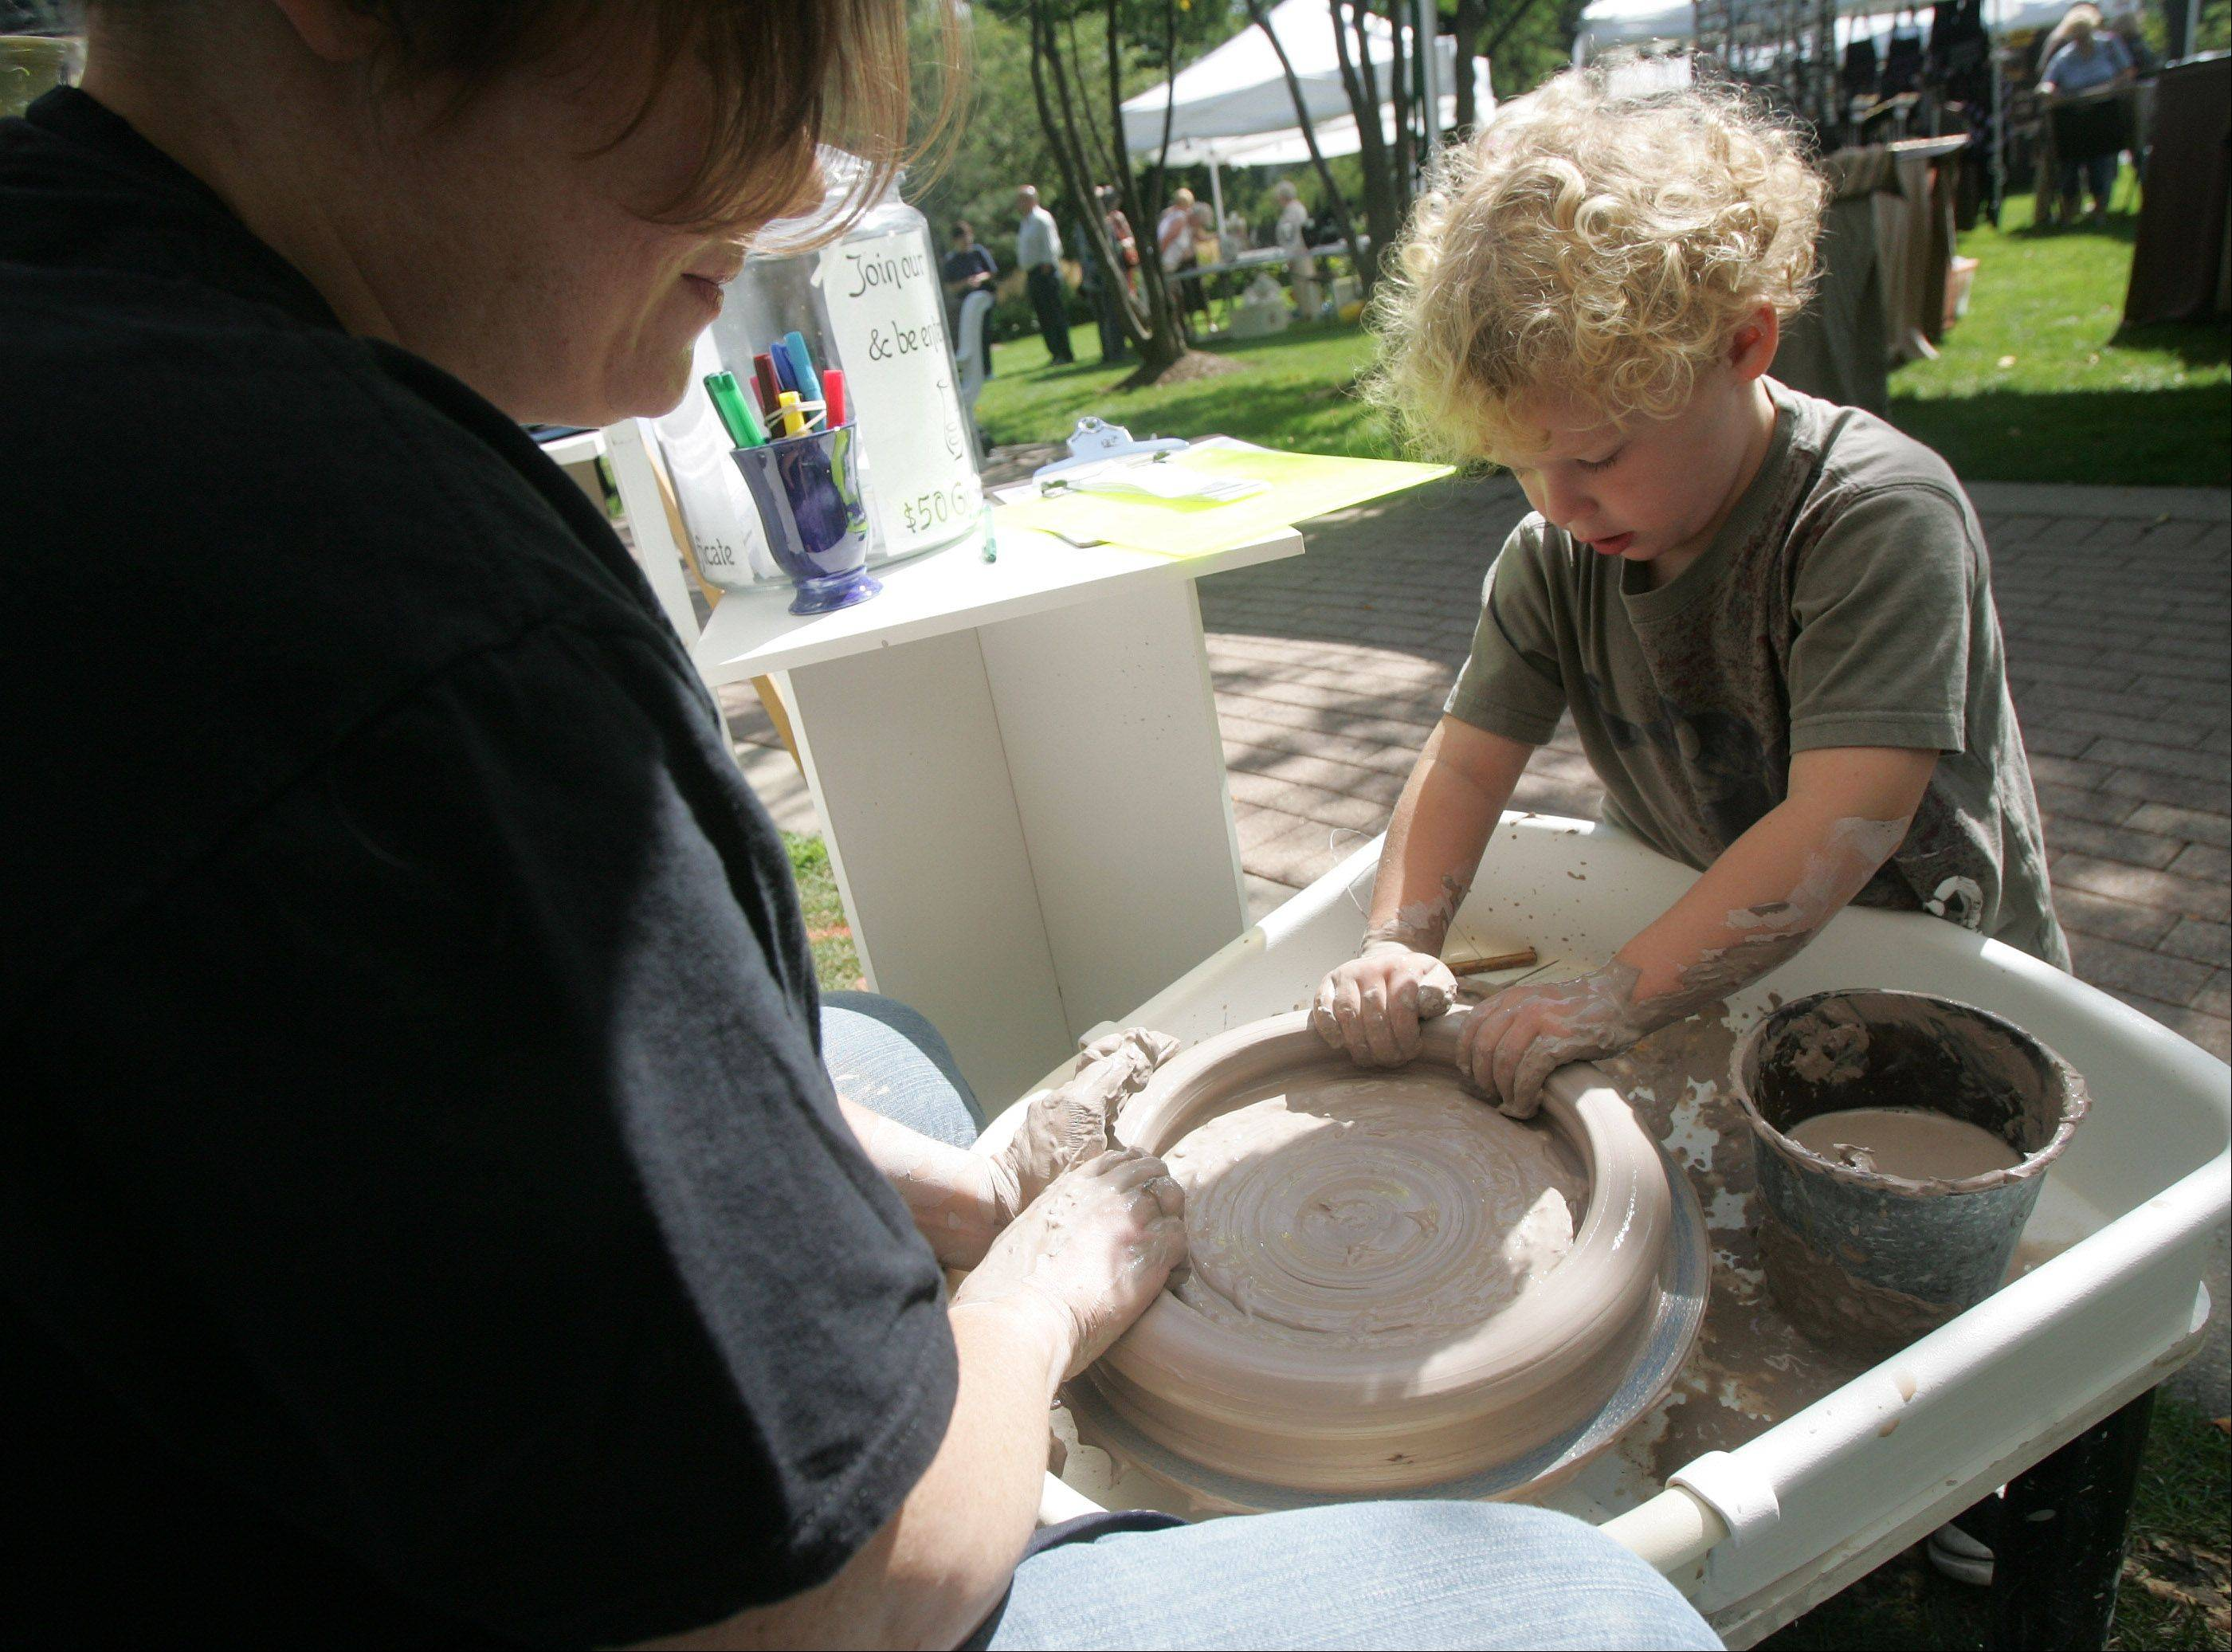 Greyson Ruhl, of Arlington Heights, helps his mother, Andi, with her spin art plates at the 2012 show. Many artists demonstrate their art on site.